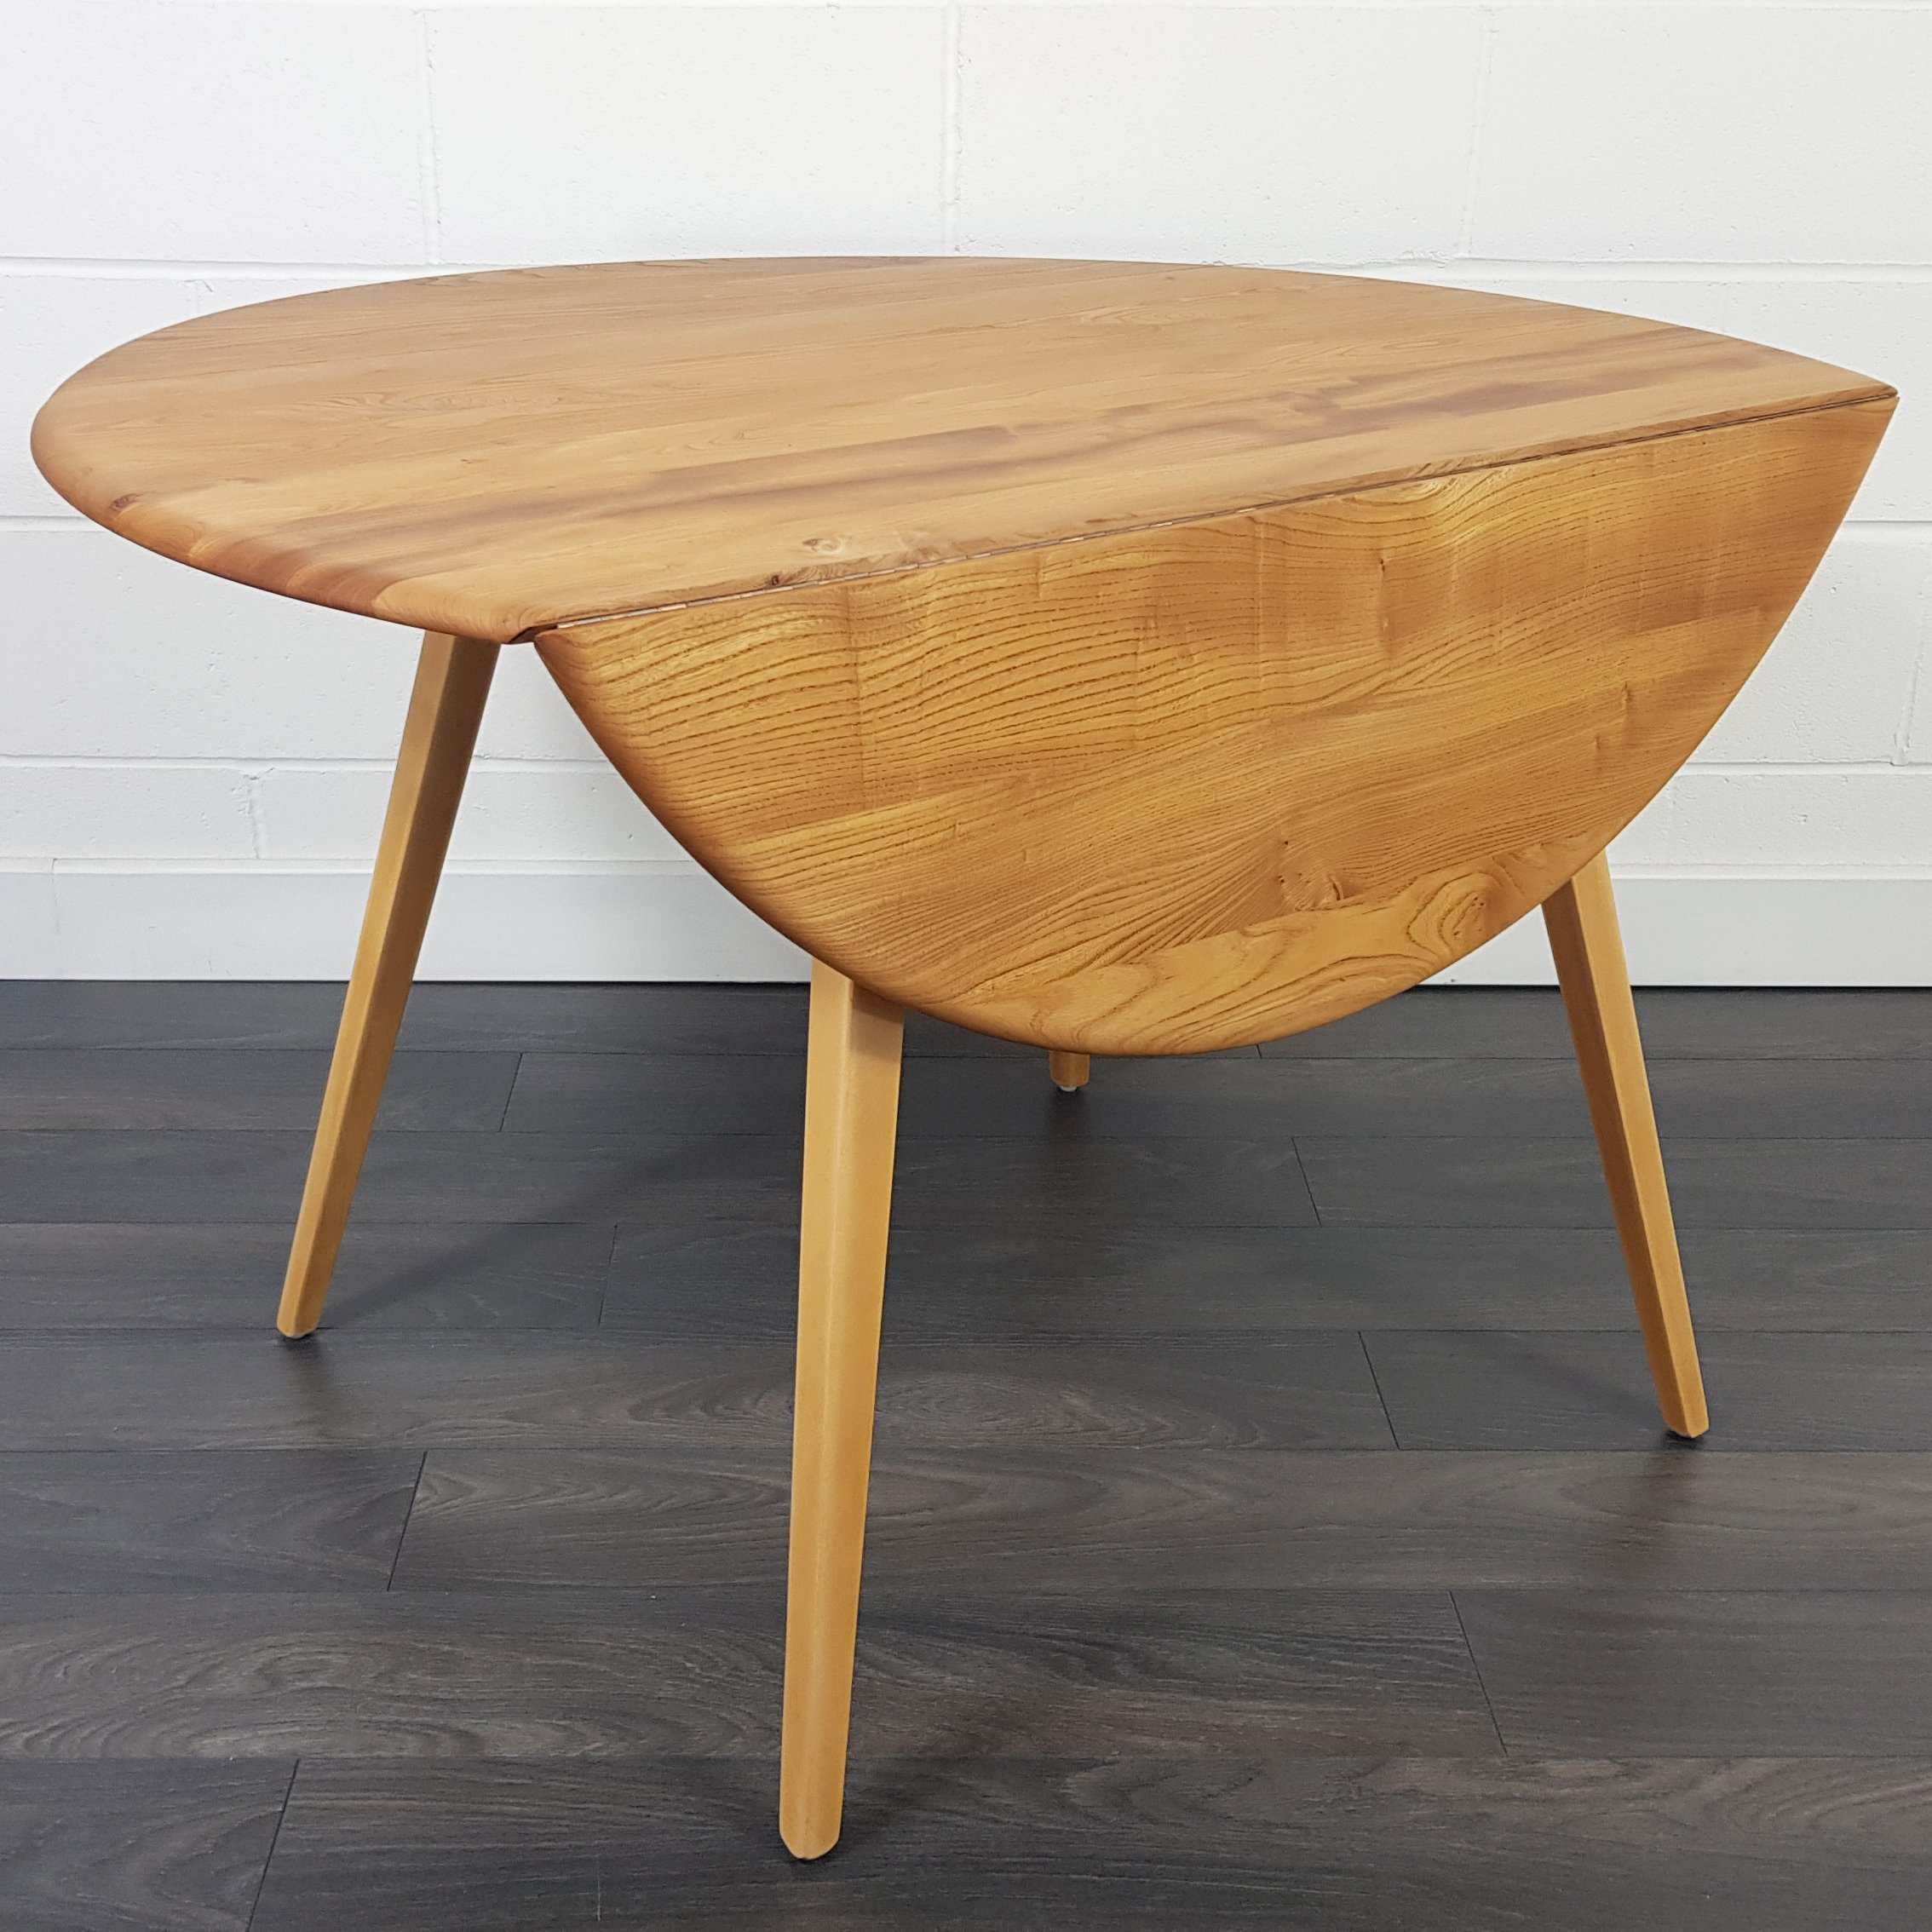 Ercol Round Drop Leaf Dining Table 1960s 135776